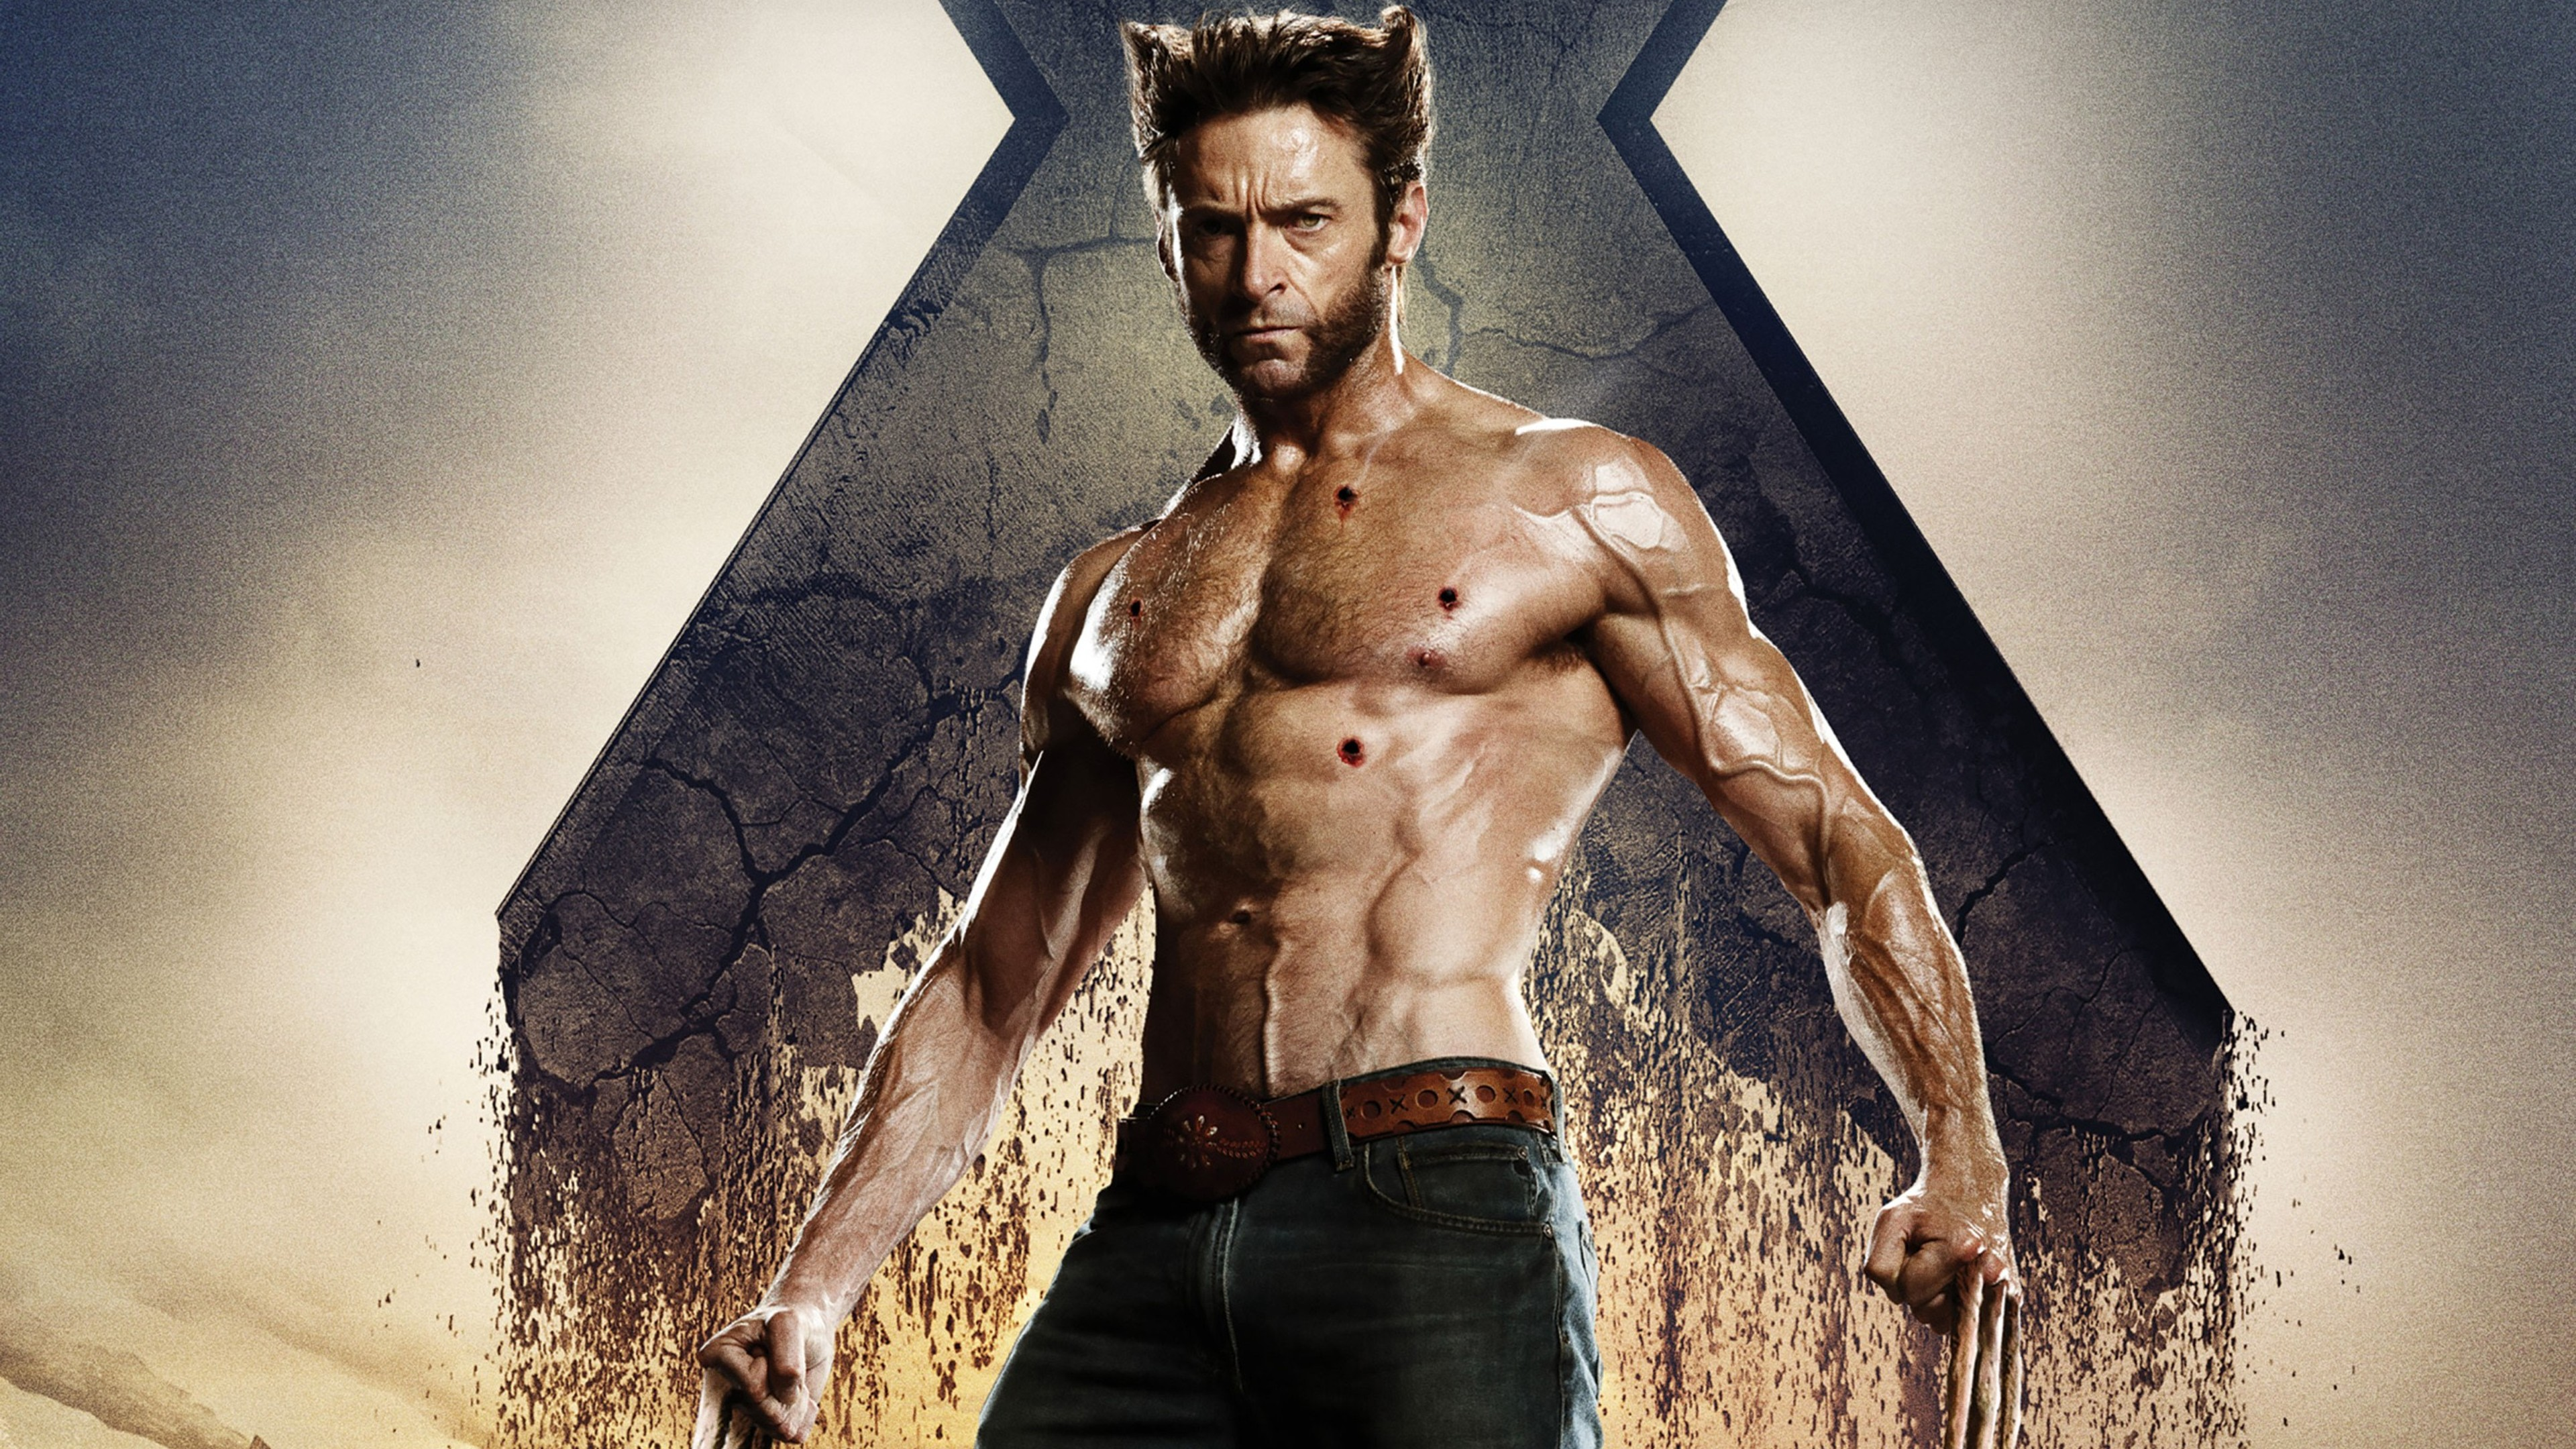 2048x1152 wolverine in x men 2048x1152 resolution hd 4k wallpapers images backgrounds photos - Wallpaper wolverine 4k ...